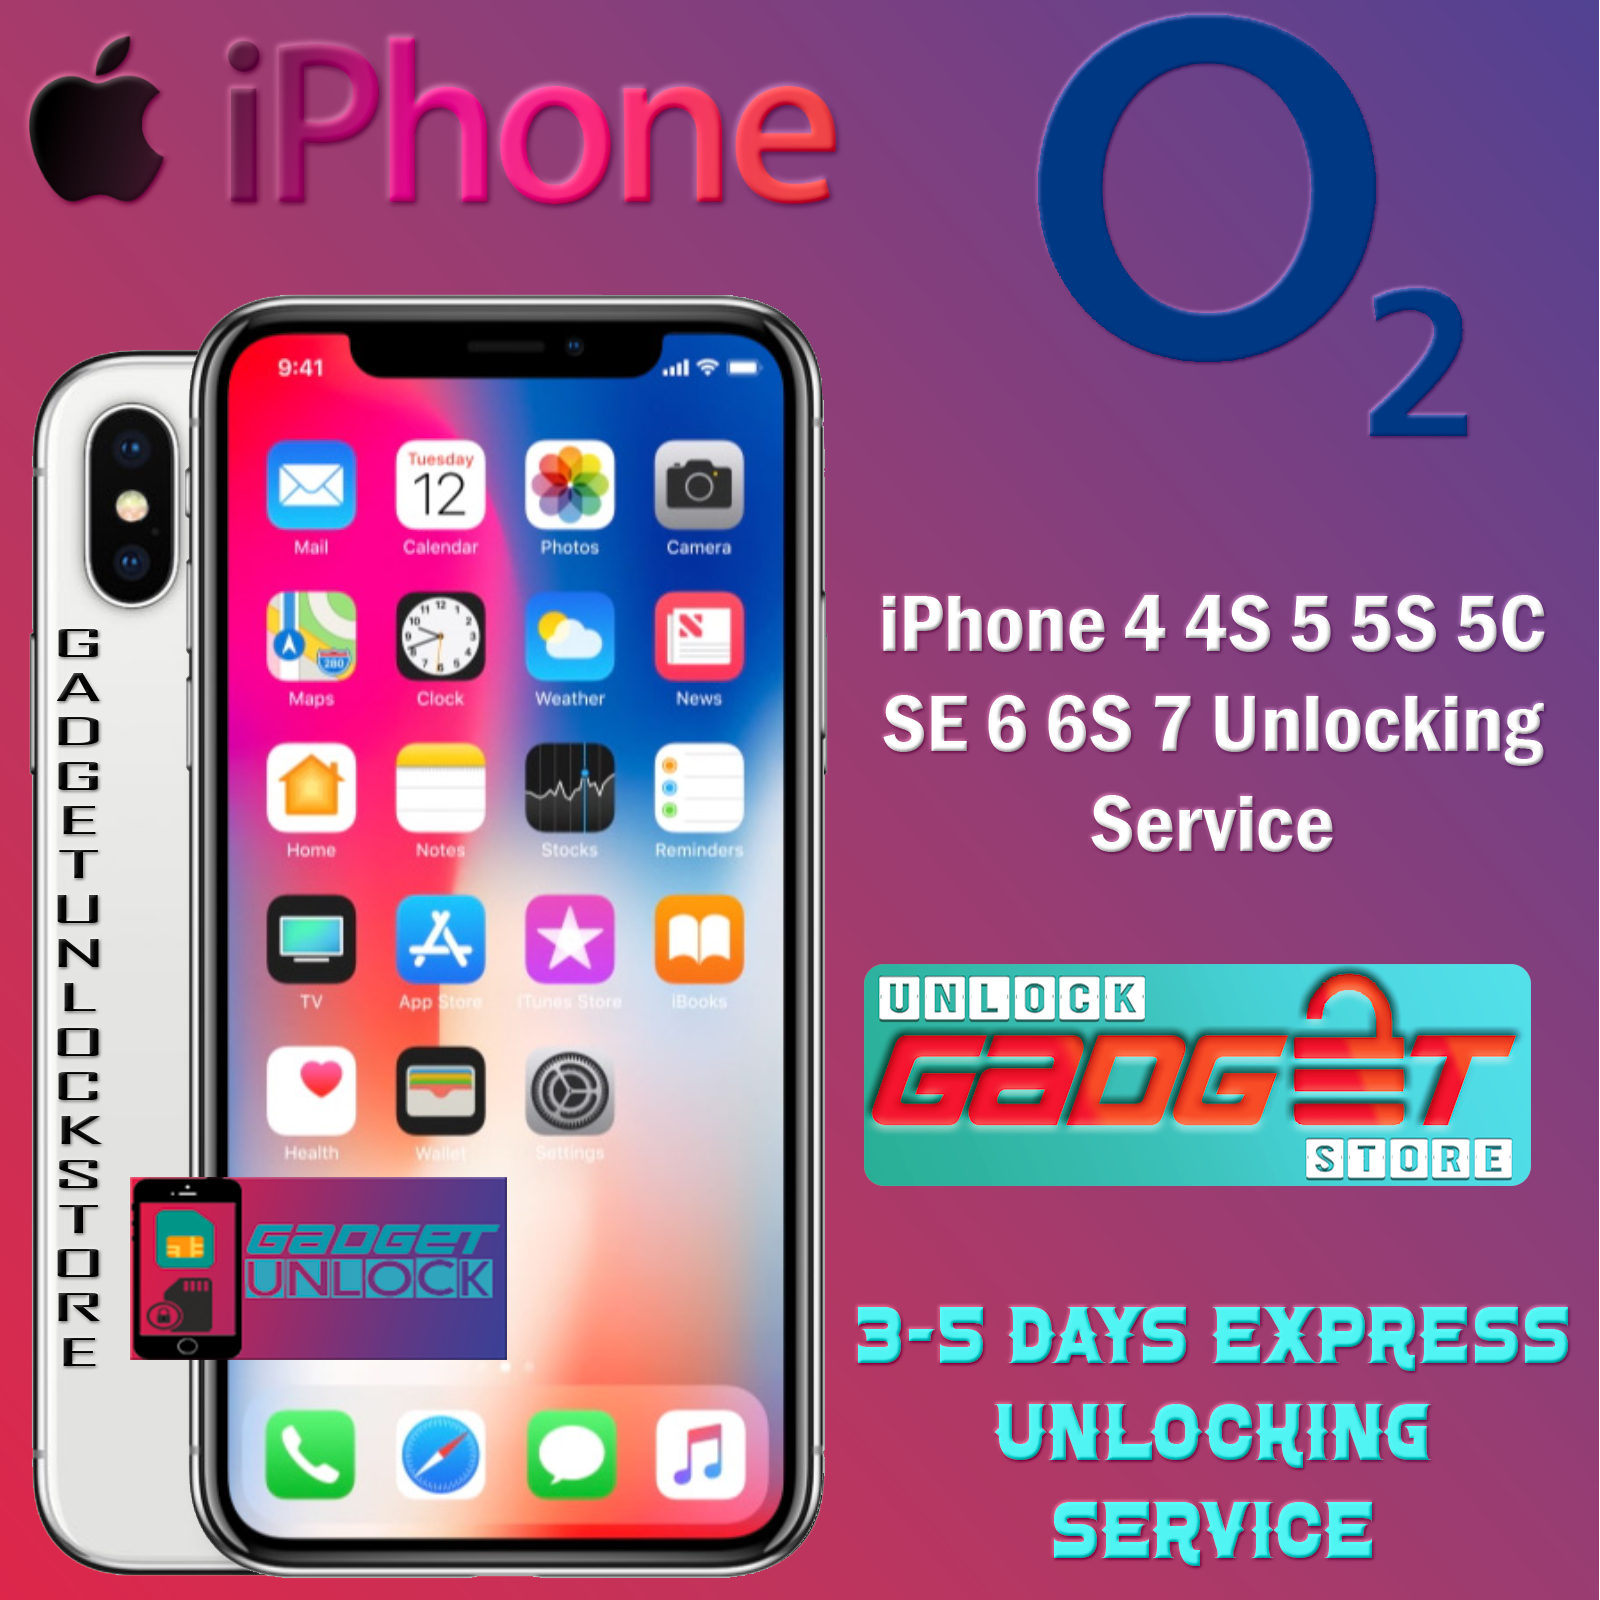 UNLOCK CODE FOR IPHONE 5 5S 5C SE 6 6S 7 8 X XR XS 11 Pro Max O2 TESCO UK UNLOCK 4